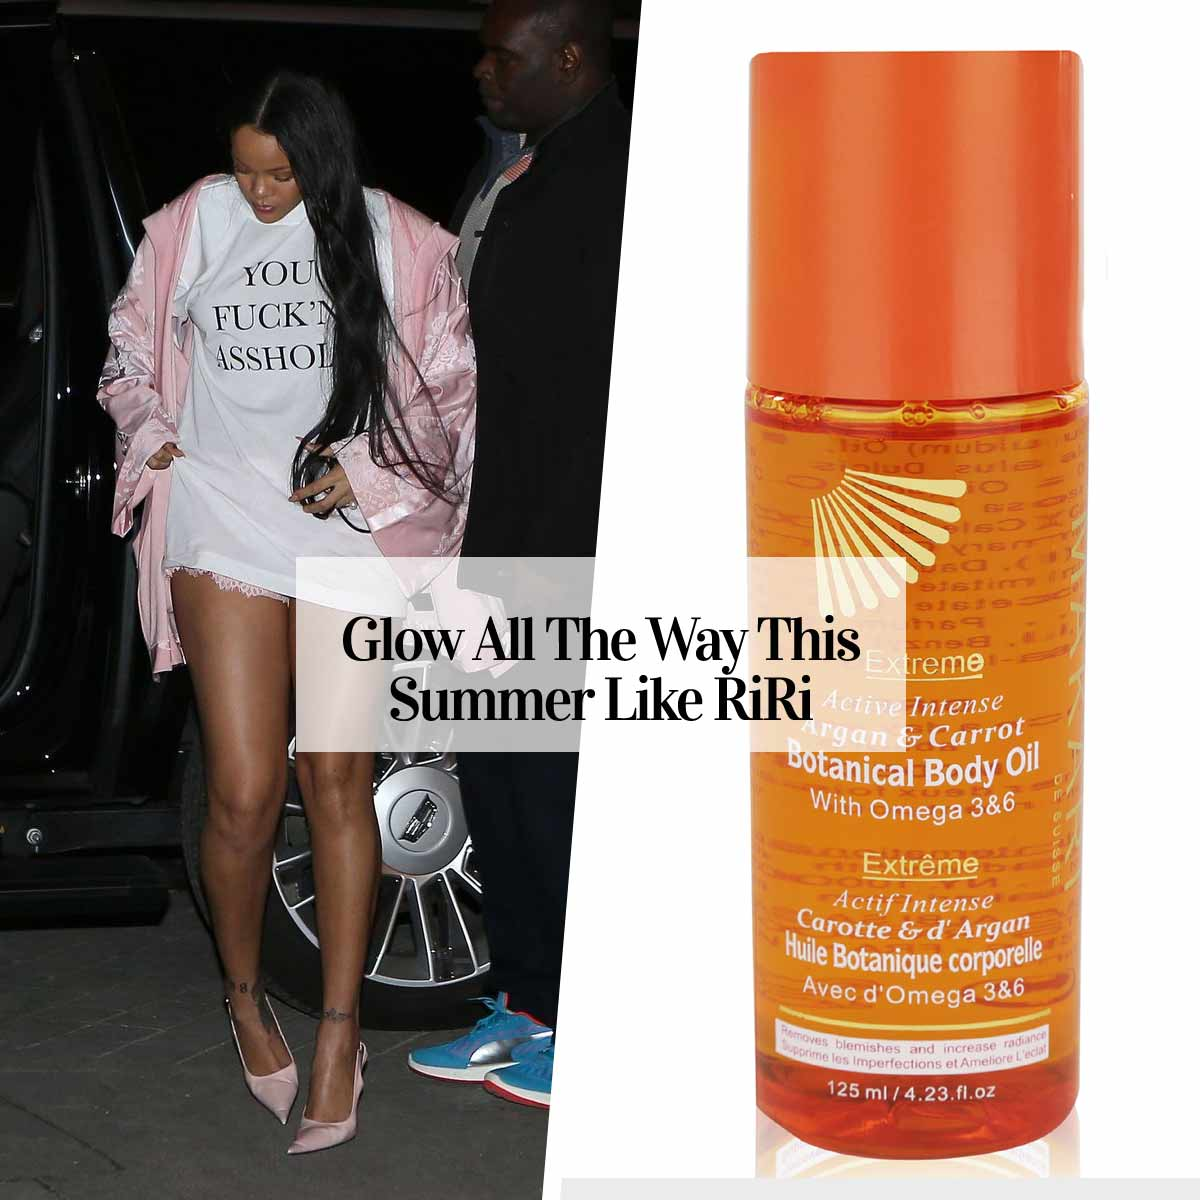 Get The RiRi Glow à la This Botanical Enriched Body Oil